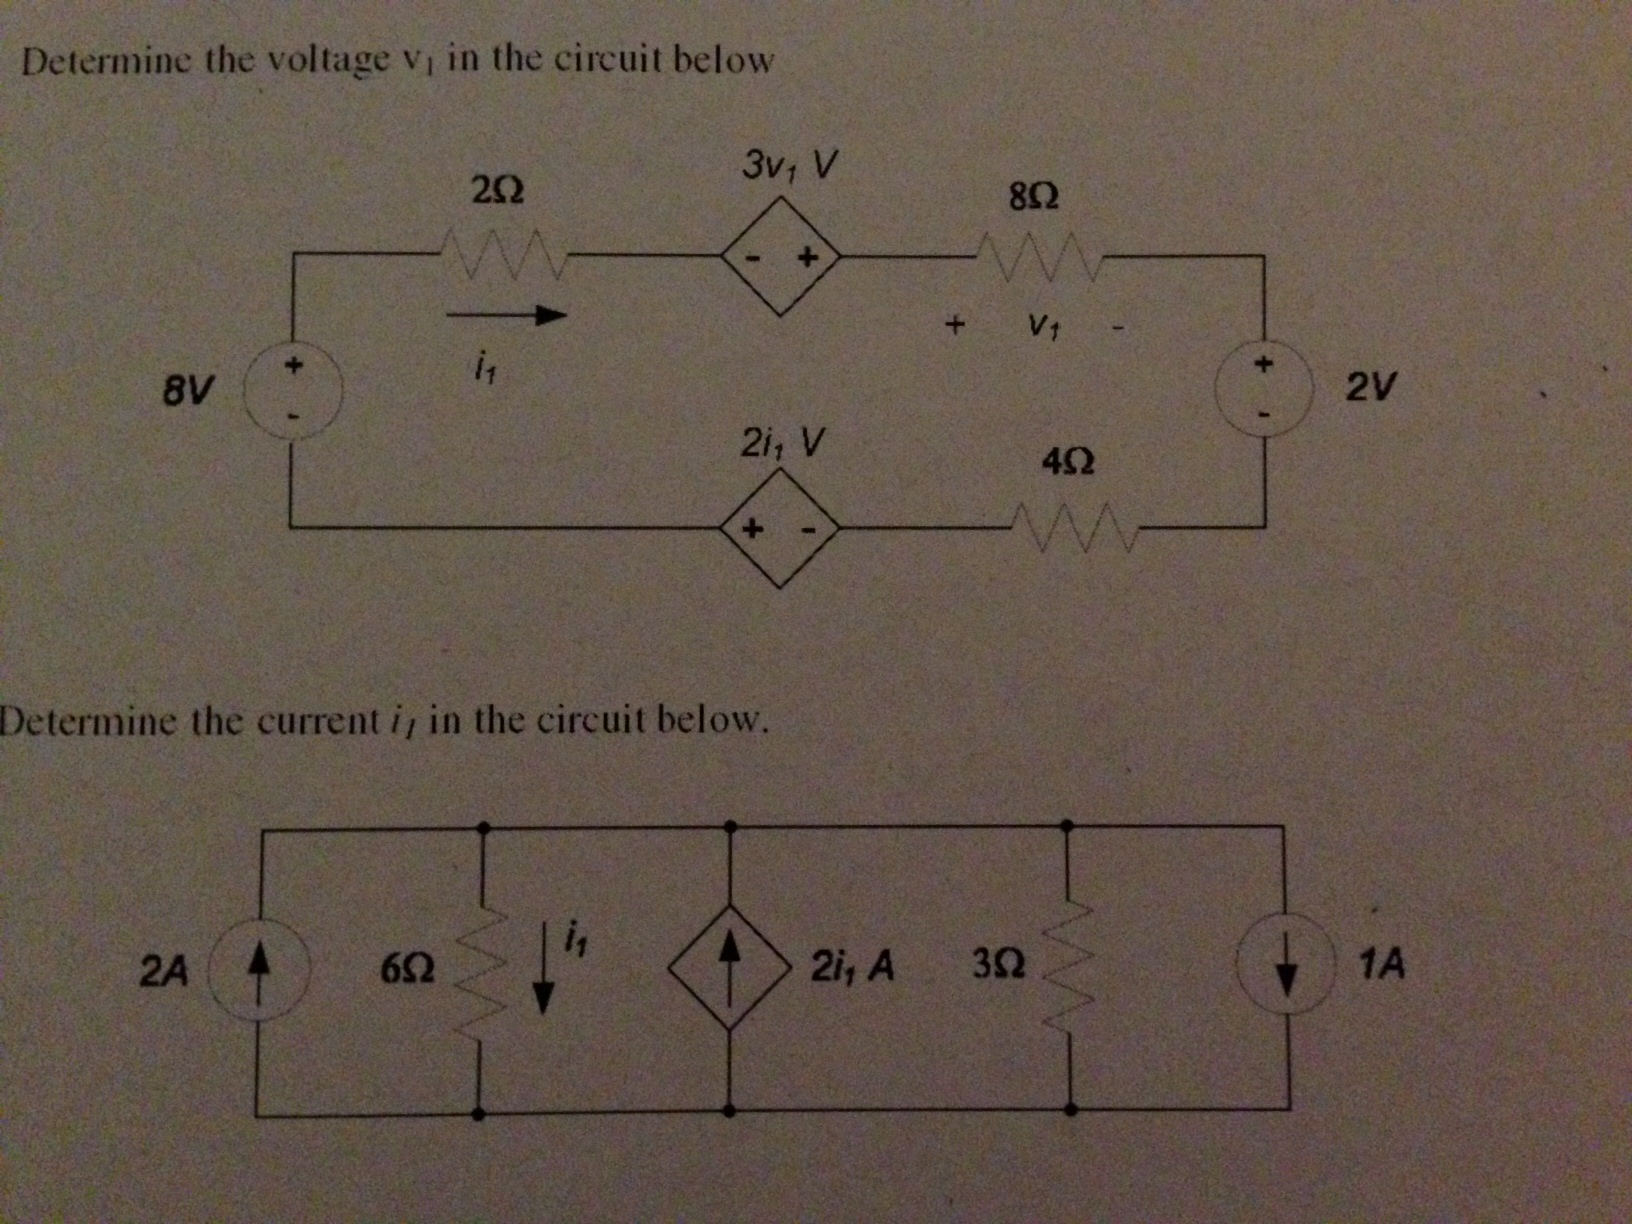 Determine the voltage v1 in the circuit below Det